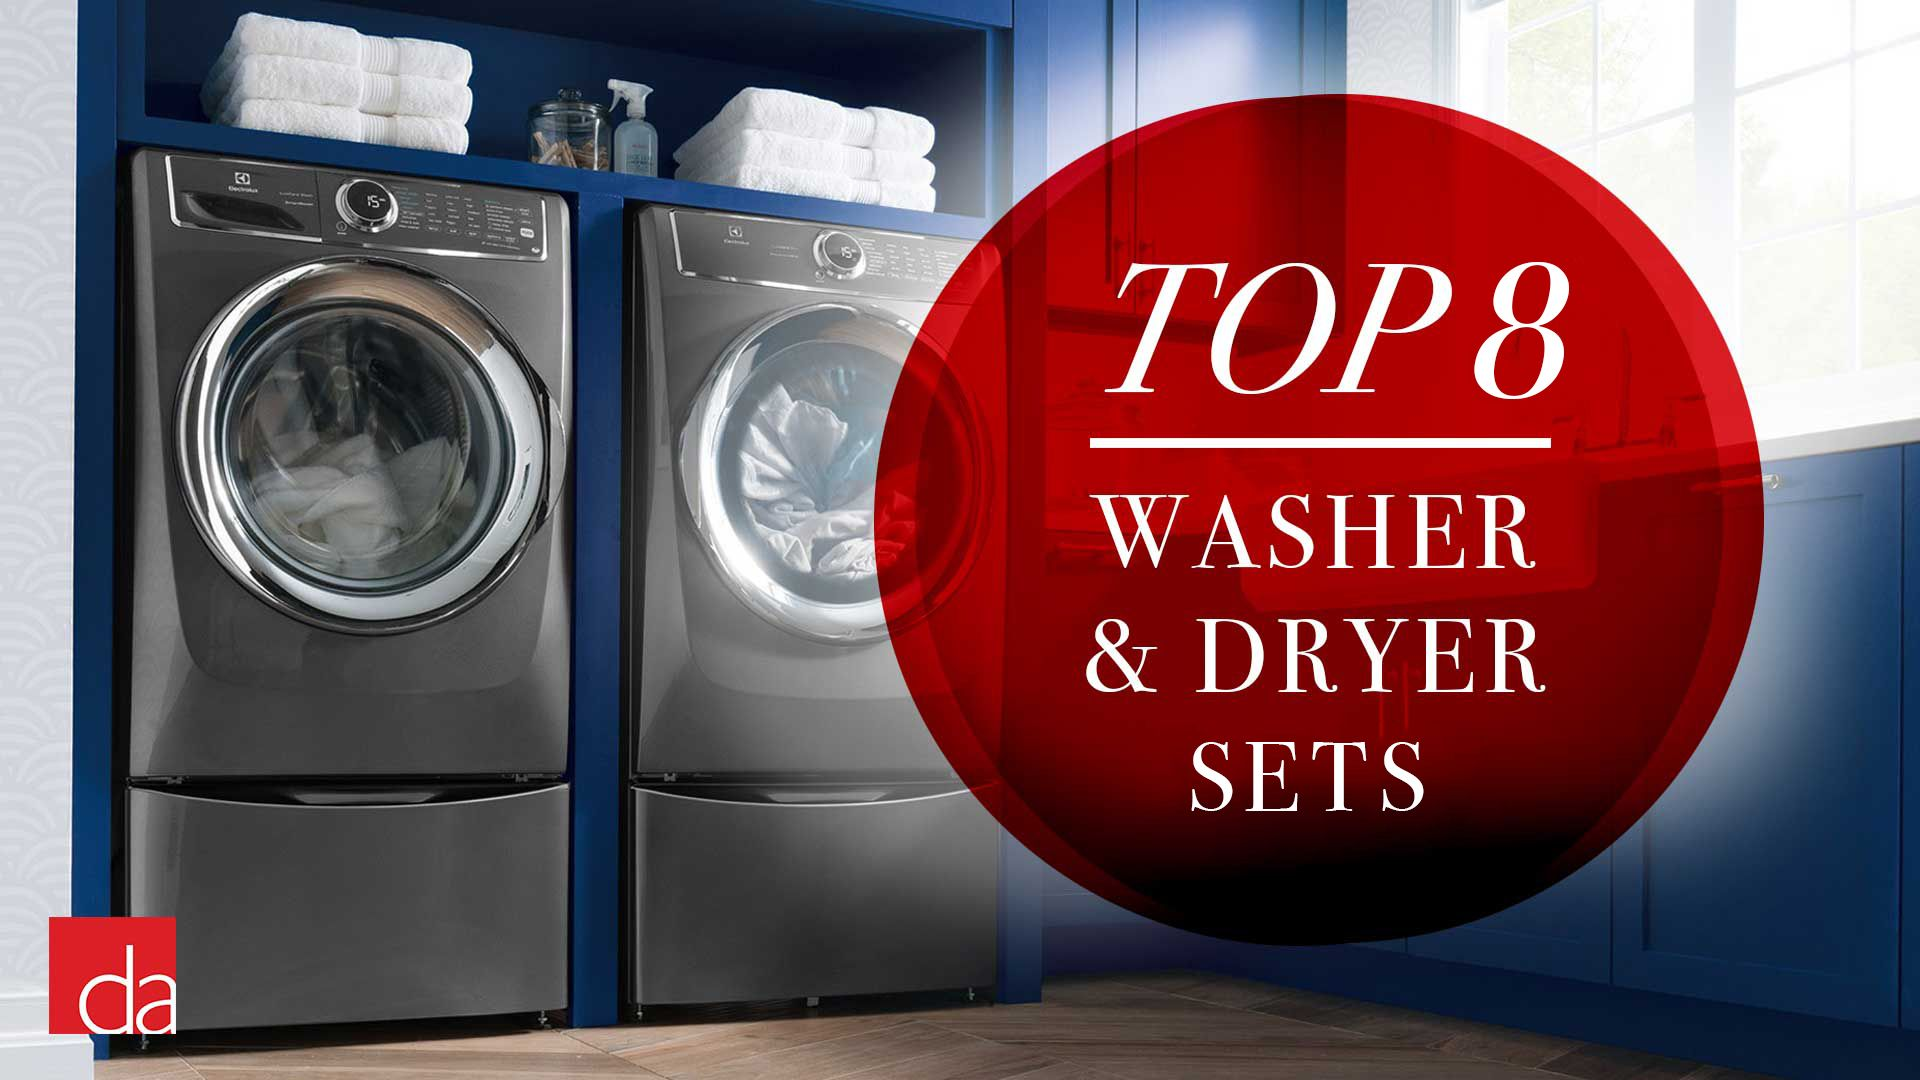 Best Washer And Dryer Top 8 Washer Dryer Sets Of 2020